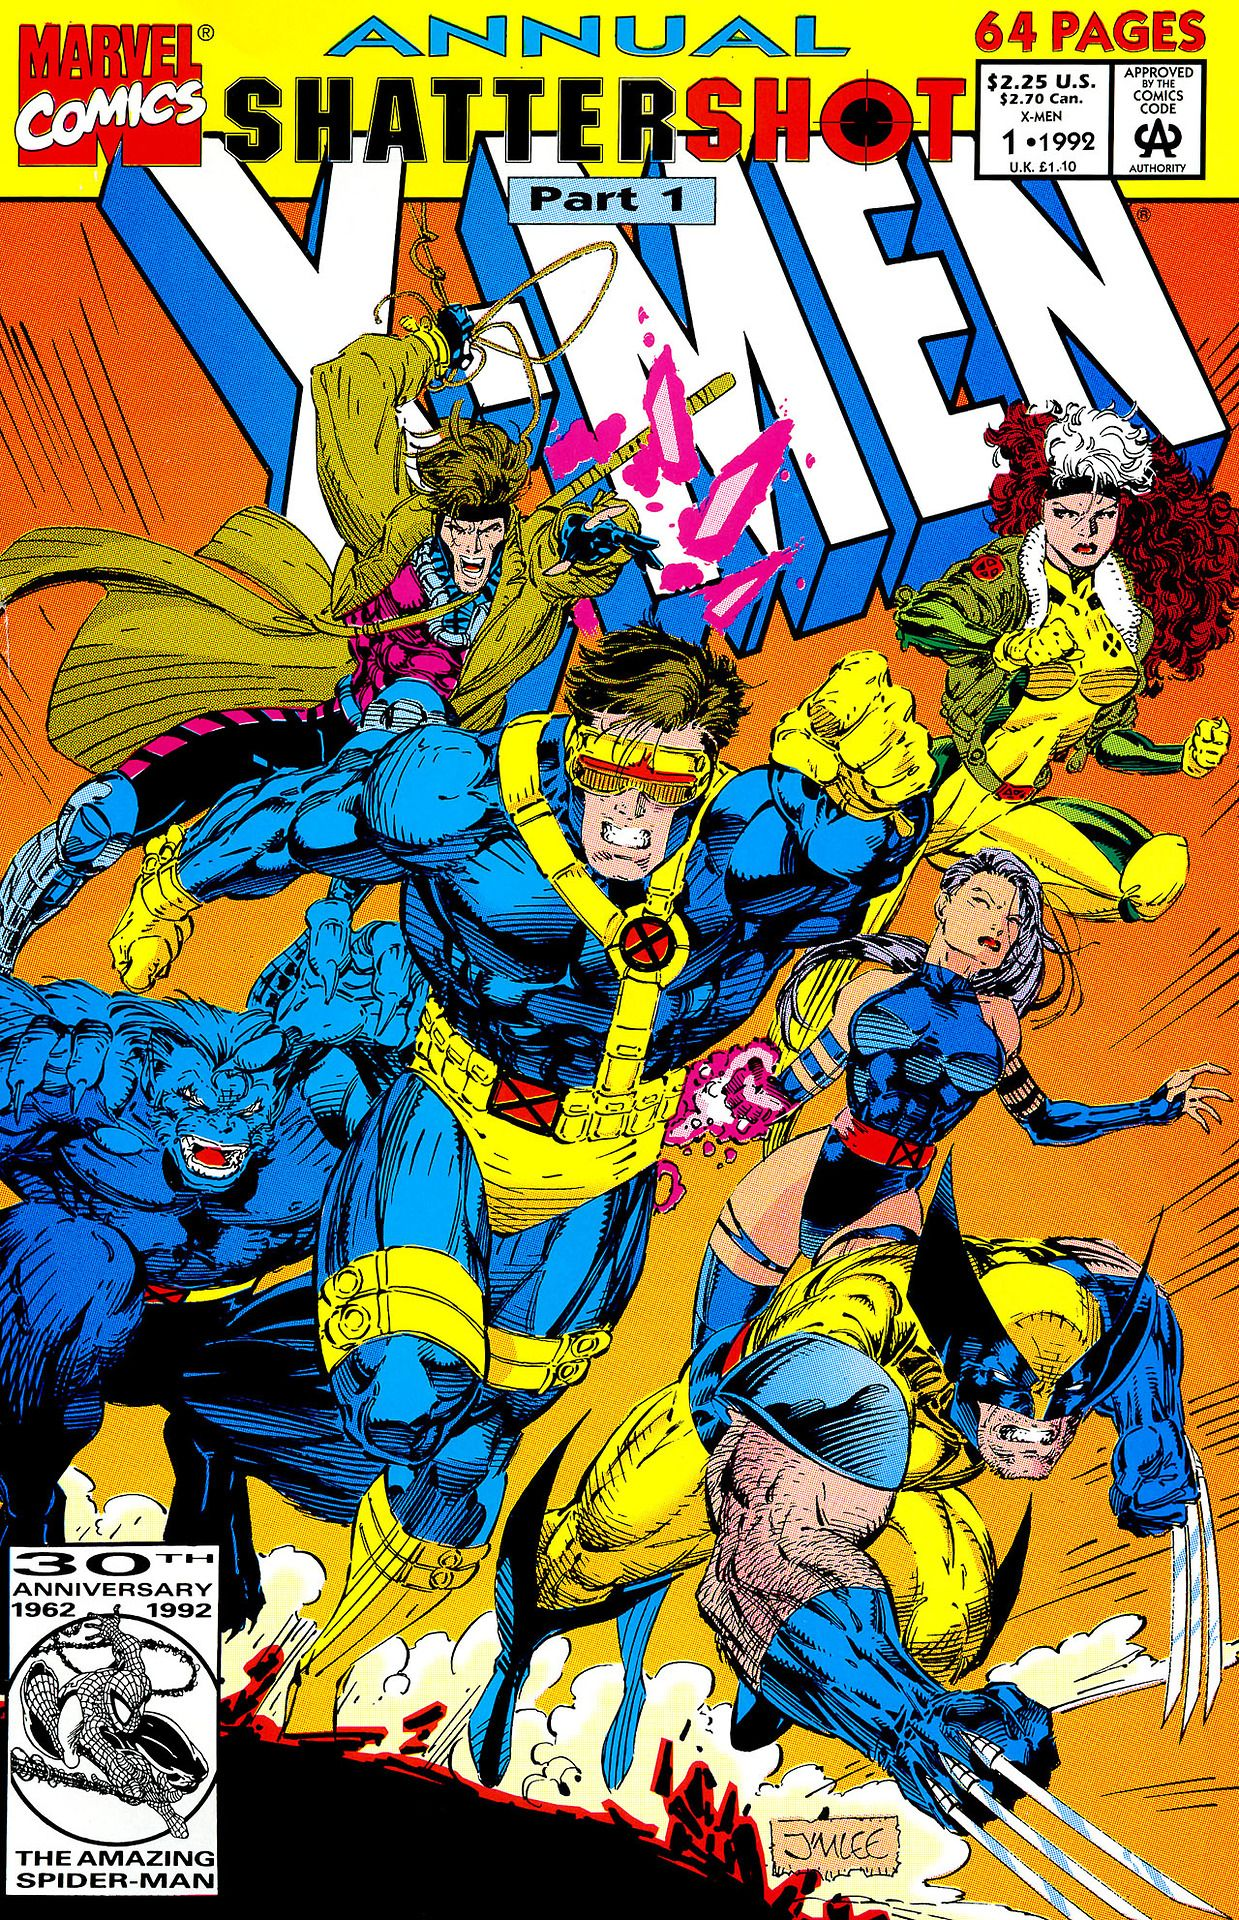 X Men Annual 1 By Jim Lee I Actually Have This Issue Marvel Comics Covers Xmen Comics Comics